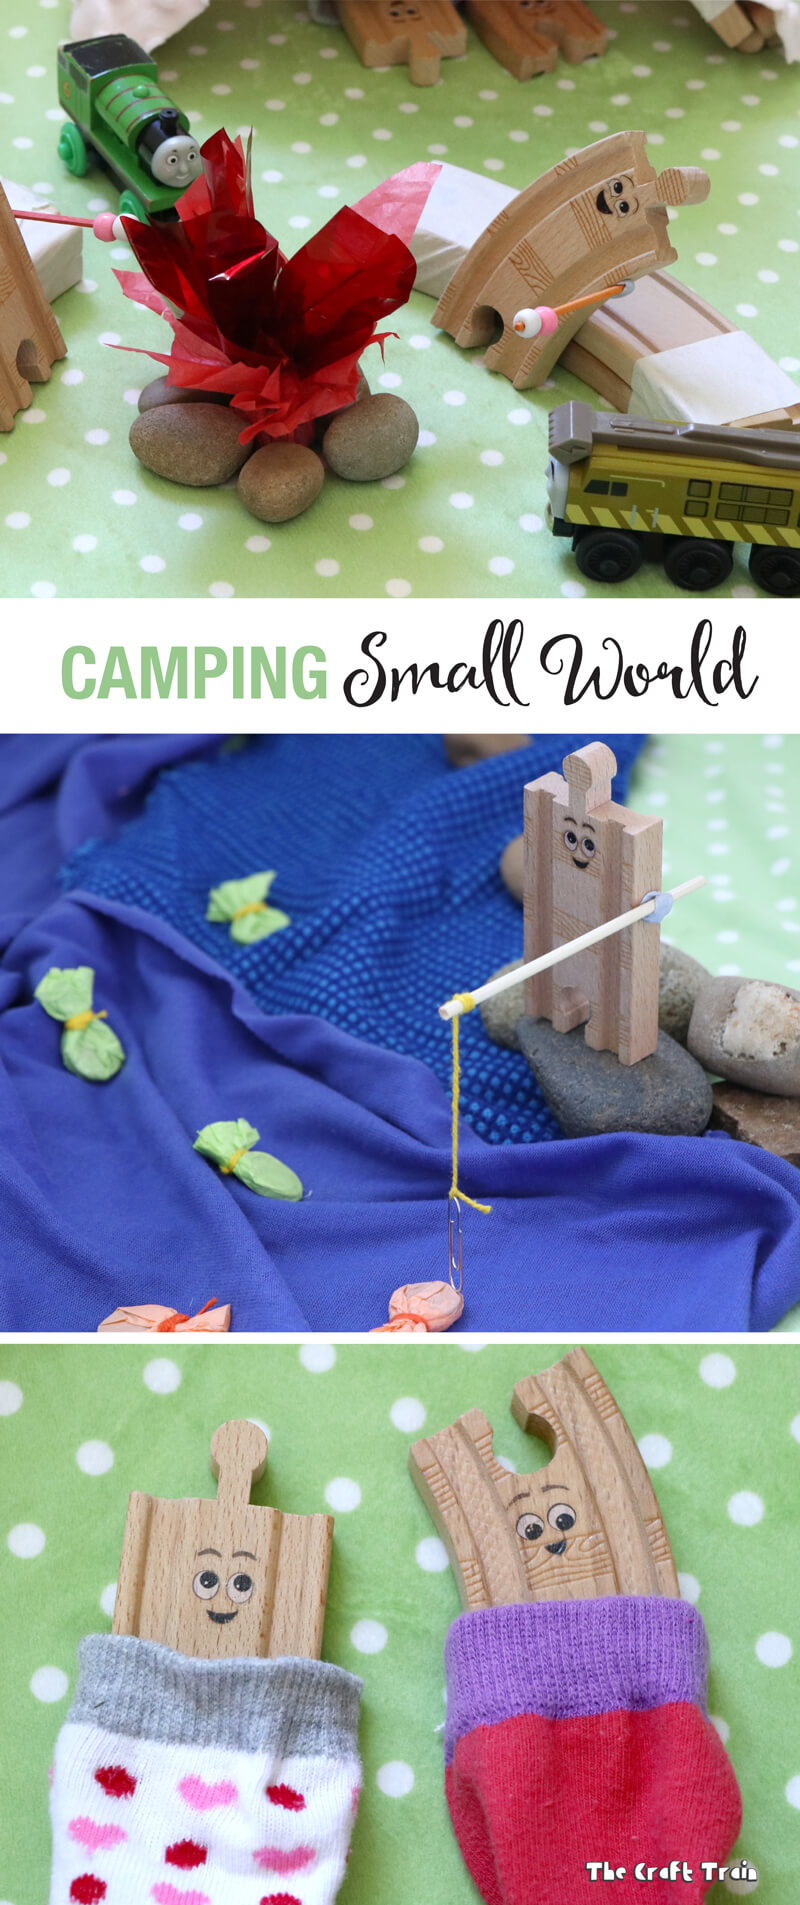 DIY camping small world for creative play. Includes magnet fish, a train-track frame tent and a crackling campfire complete with marshmallows on sticks. This has been inspired by the book 'Old Tracks New Tricks' by Jessica Peterson.